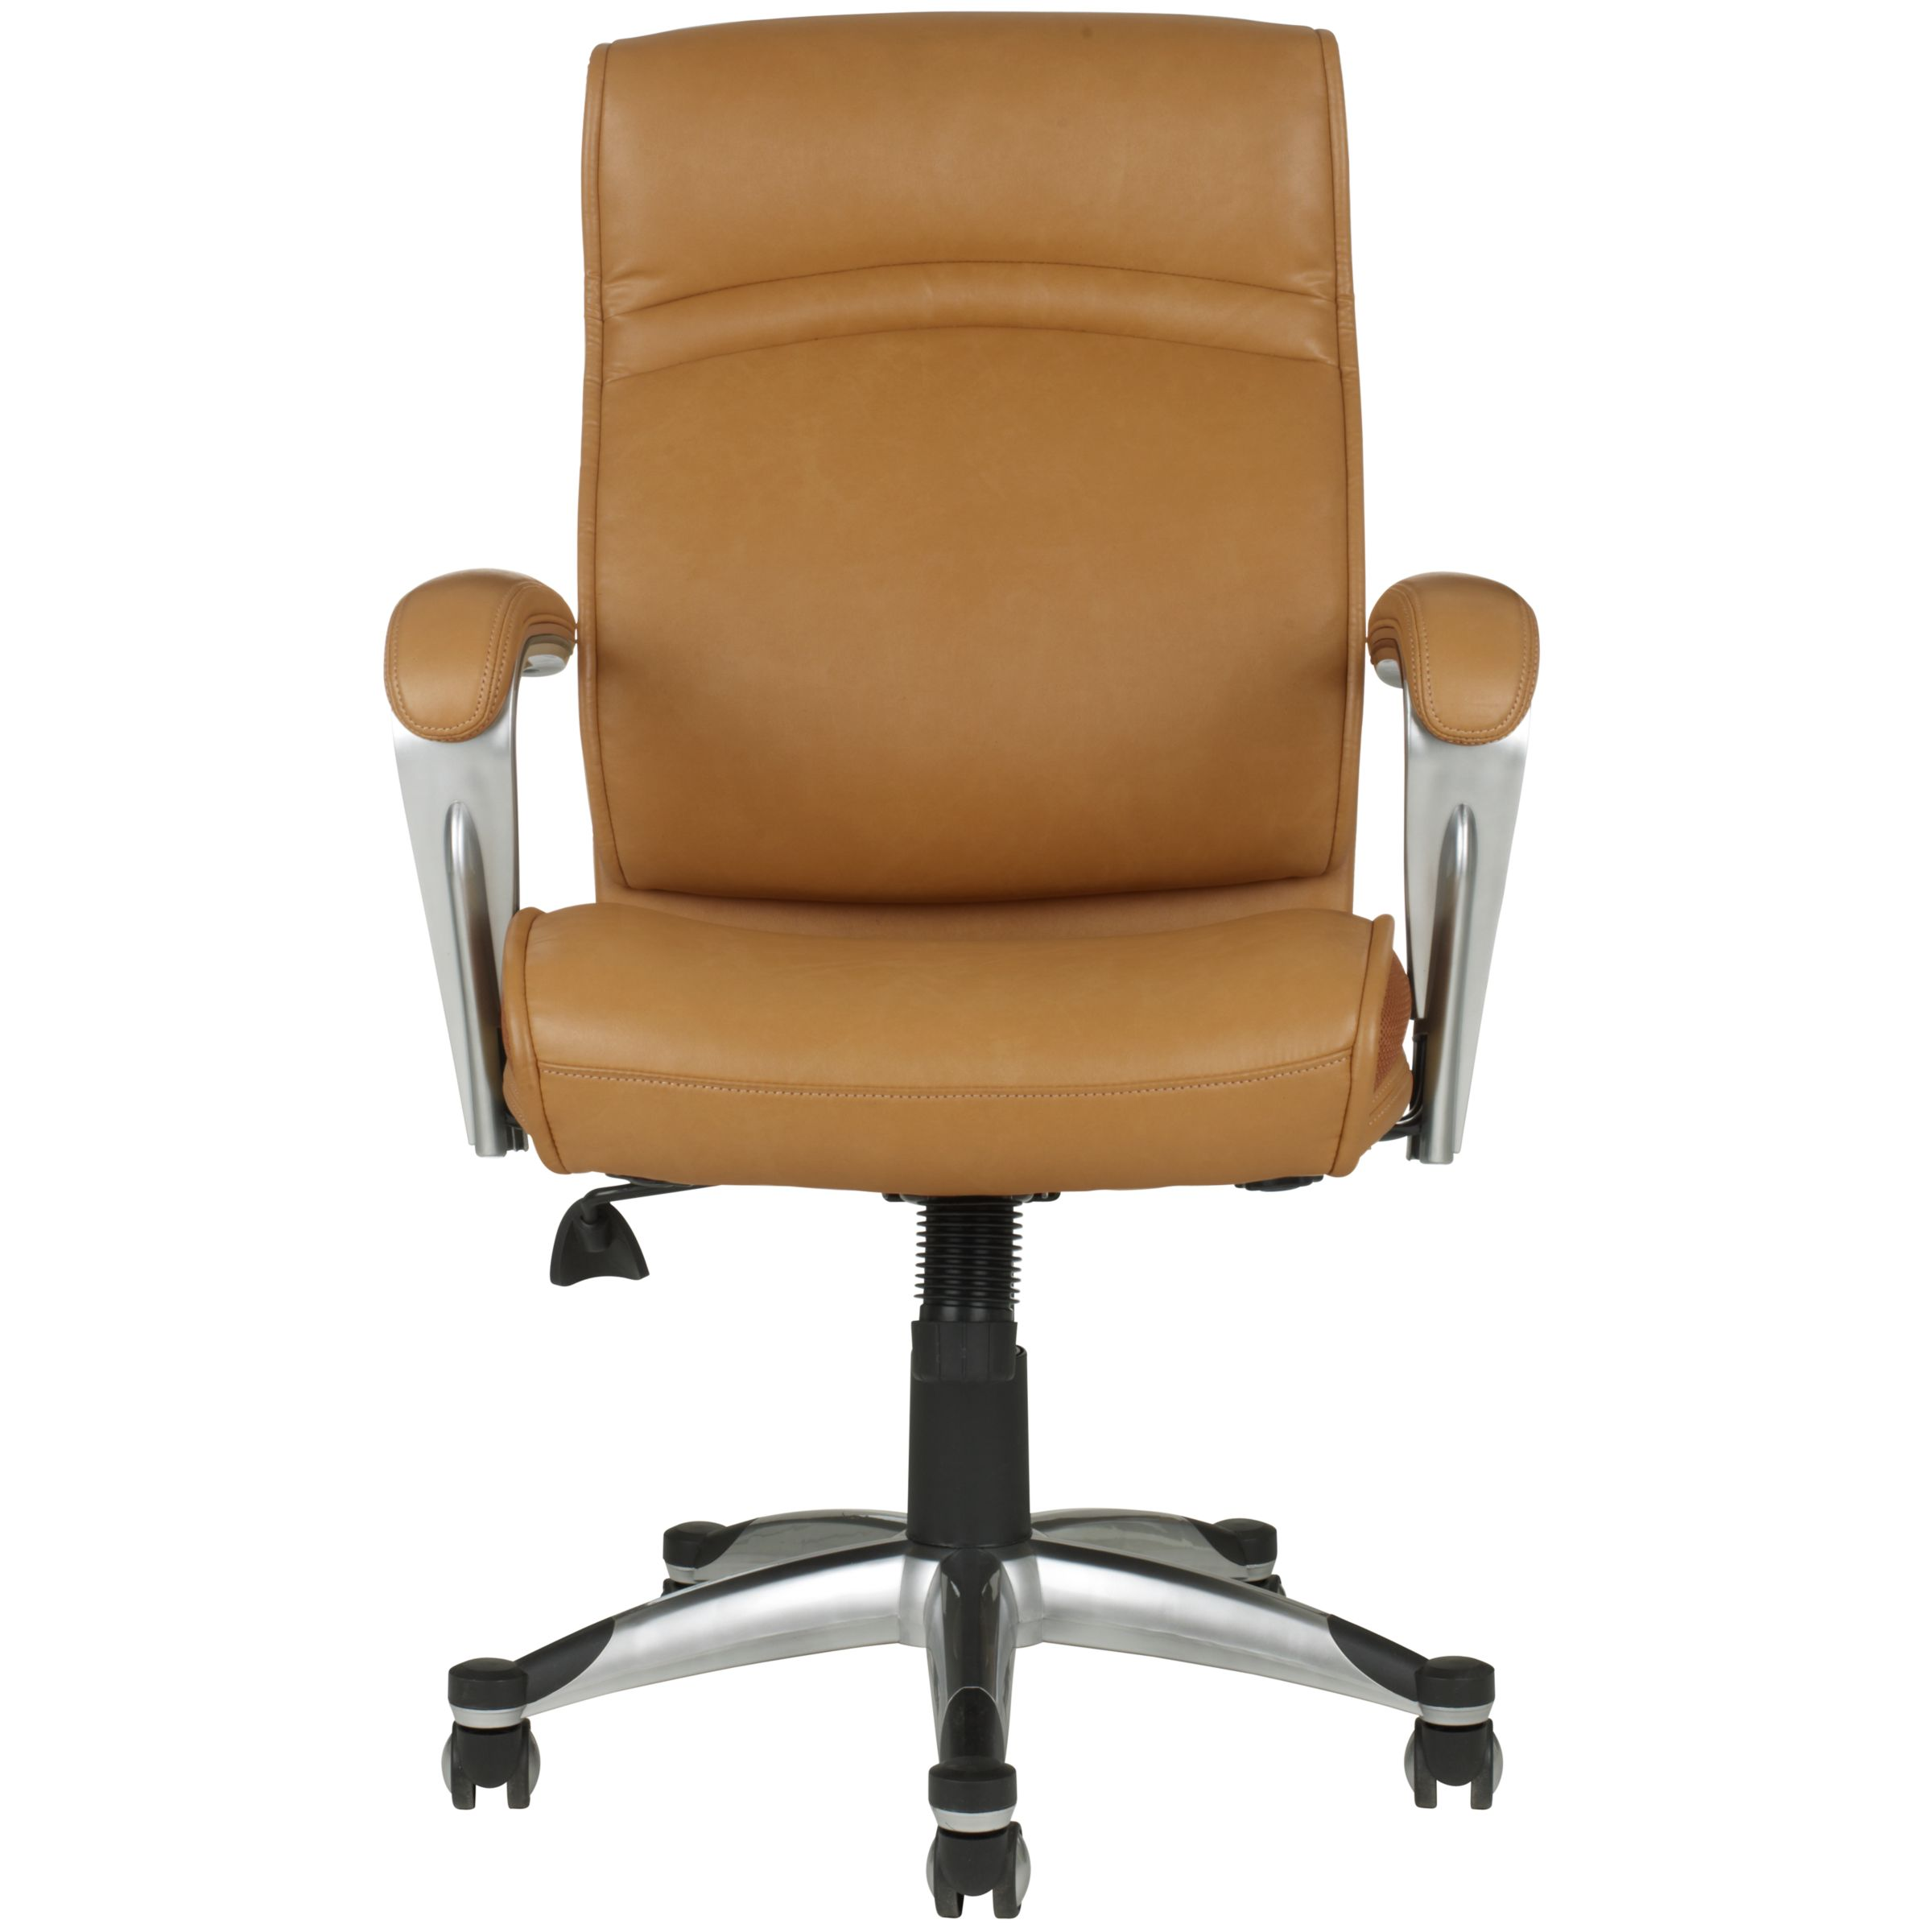 John Lewis Morgan Office Chair, Tan